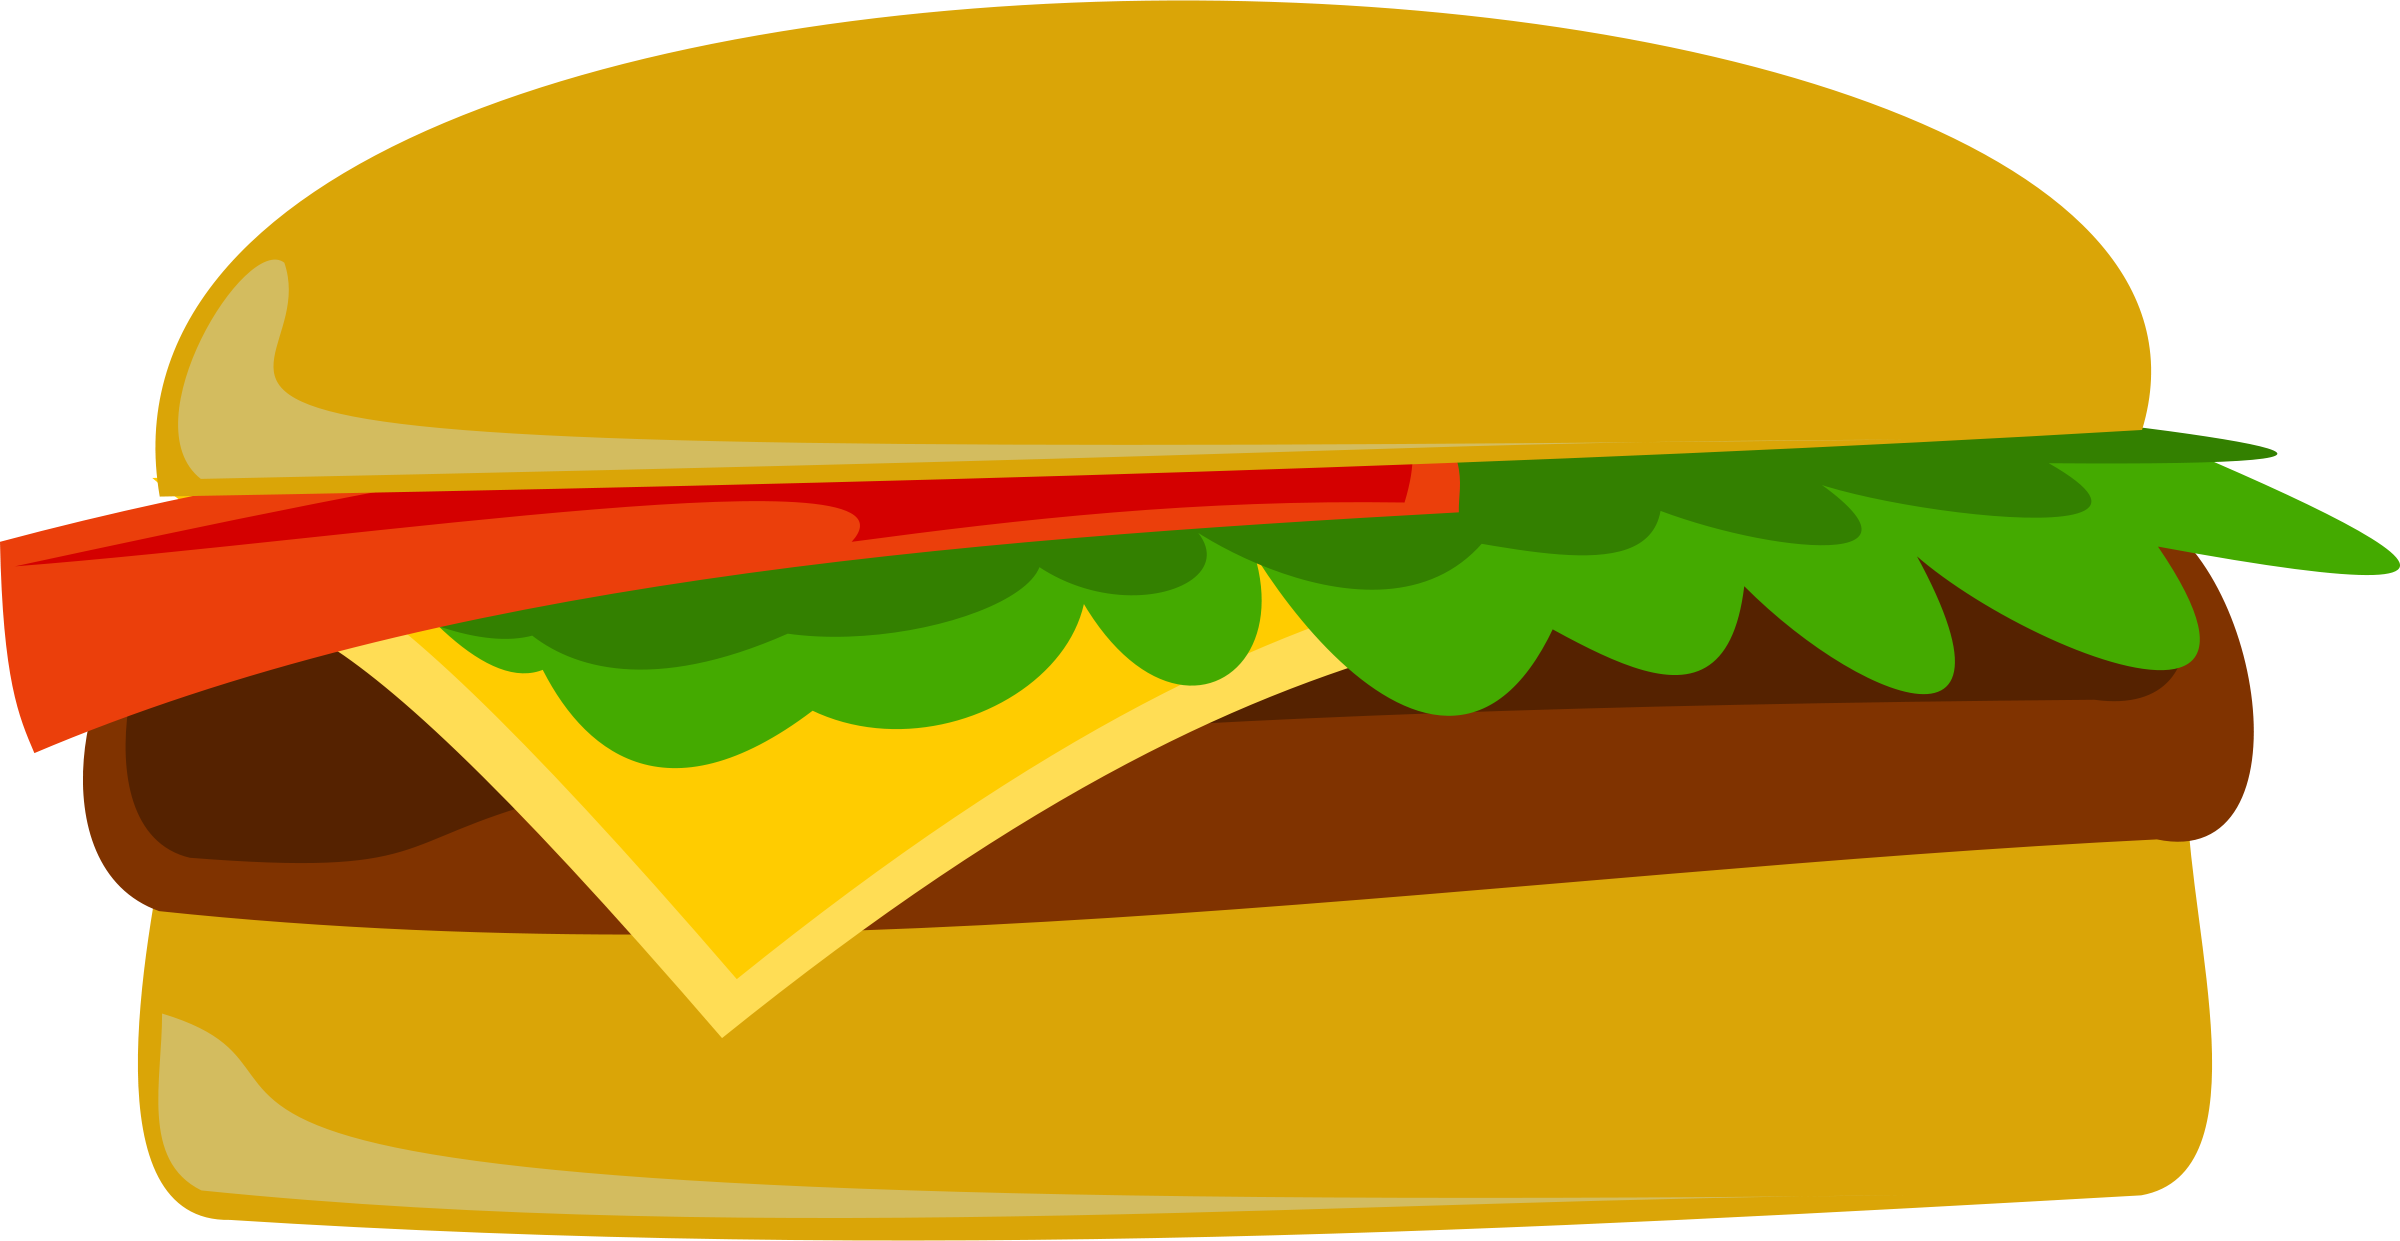 Hamburgers and hot dogs clipart clipart library library PNG Hamburgers Hot Dogs Transparent Hamburgers Hot Dogs.PNG Images ... clipart library library